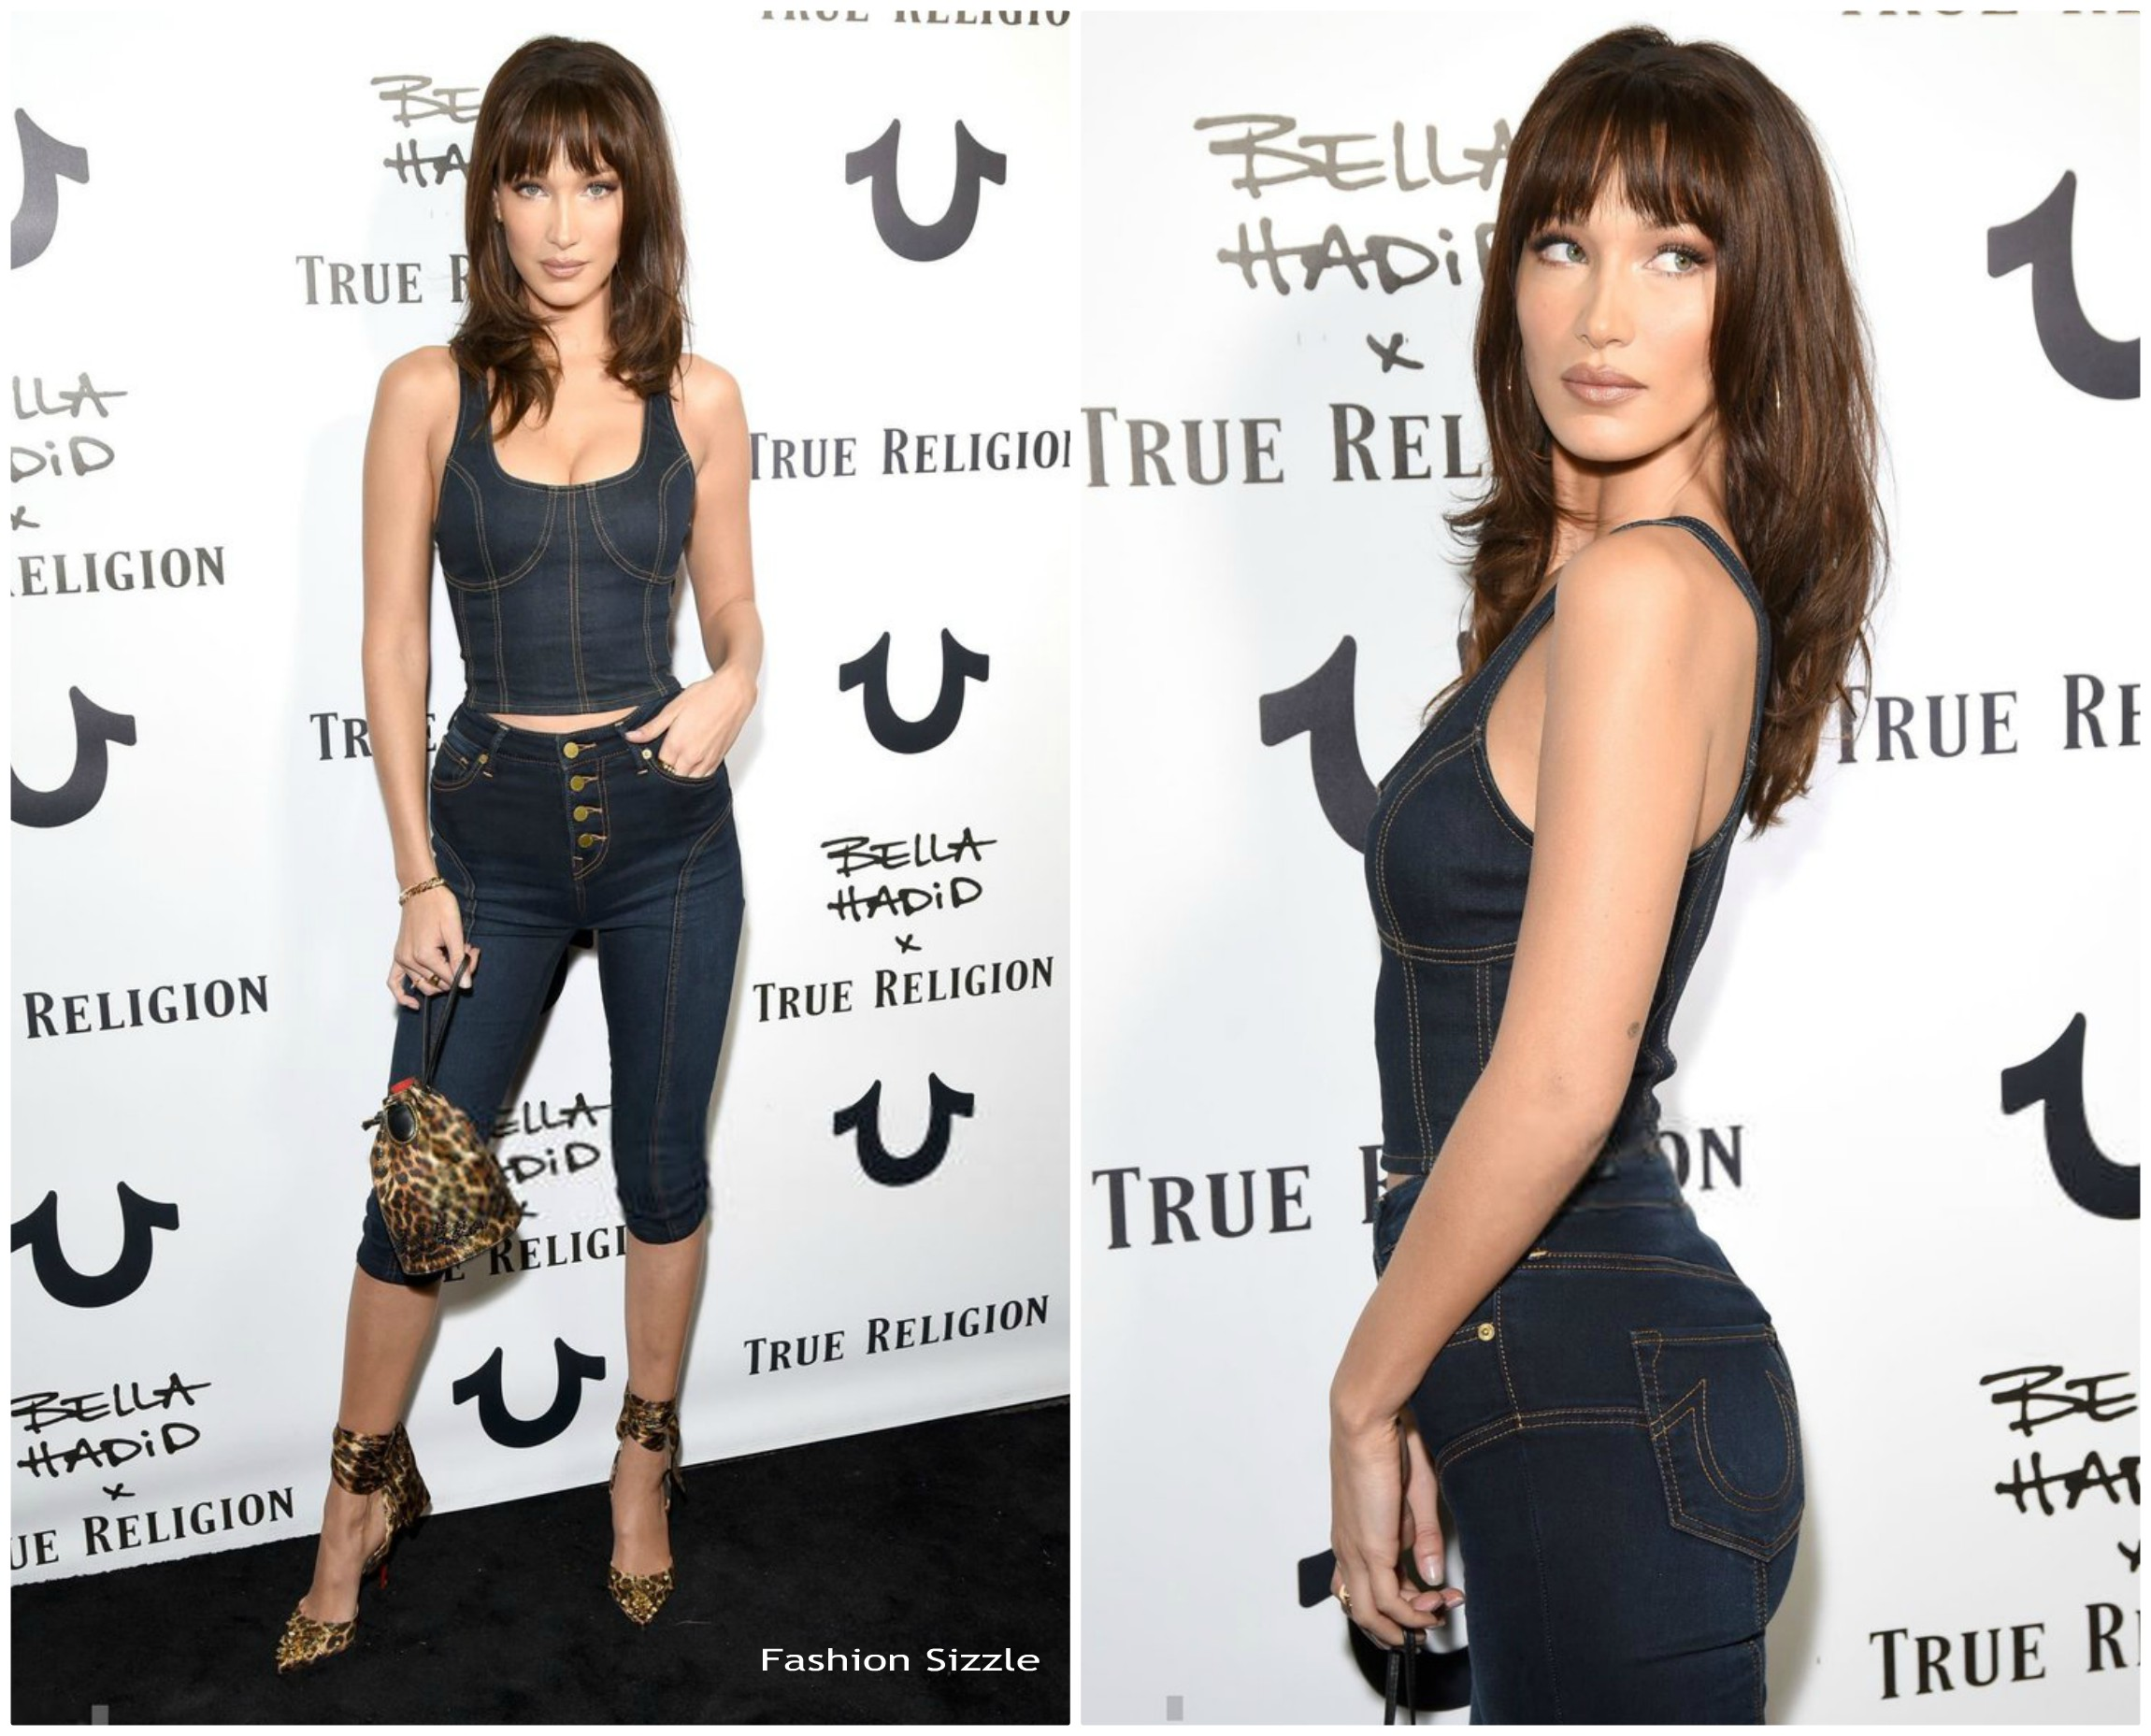 bella-hadid-x-true-religion-event